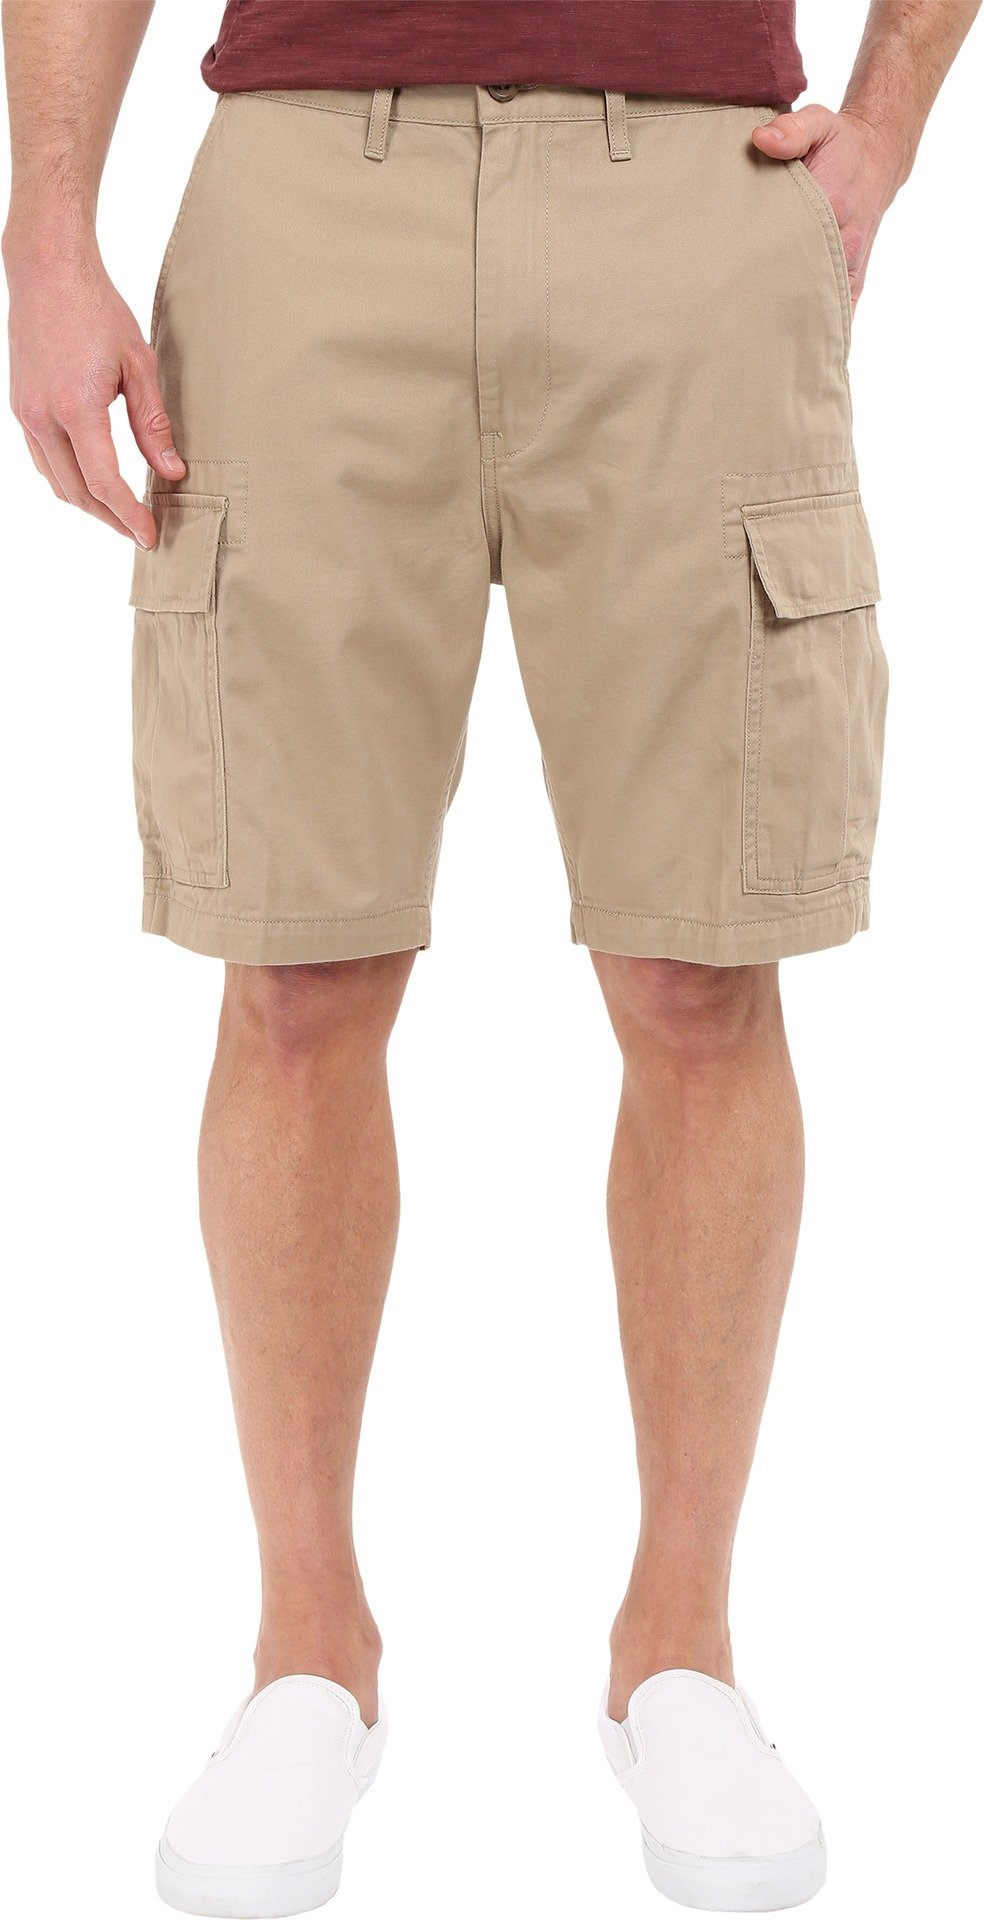 Levi's Men's Carrier Cargo Short, True Chino/Twill, 36